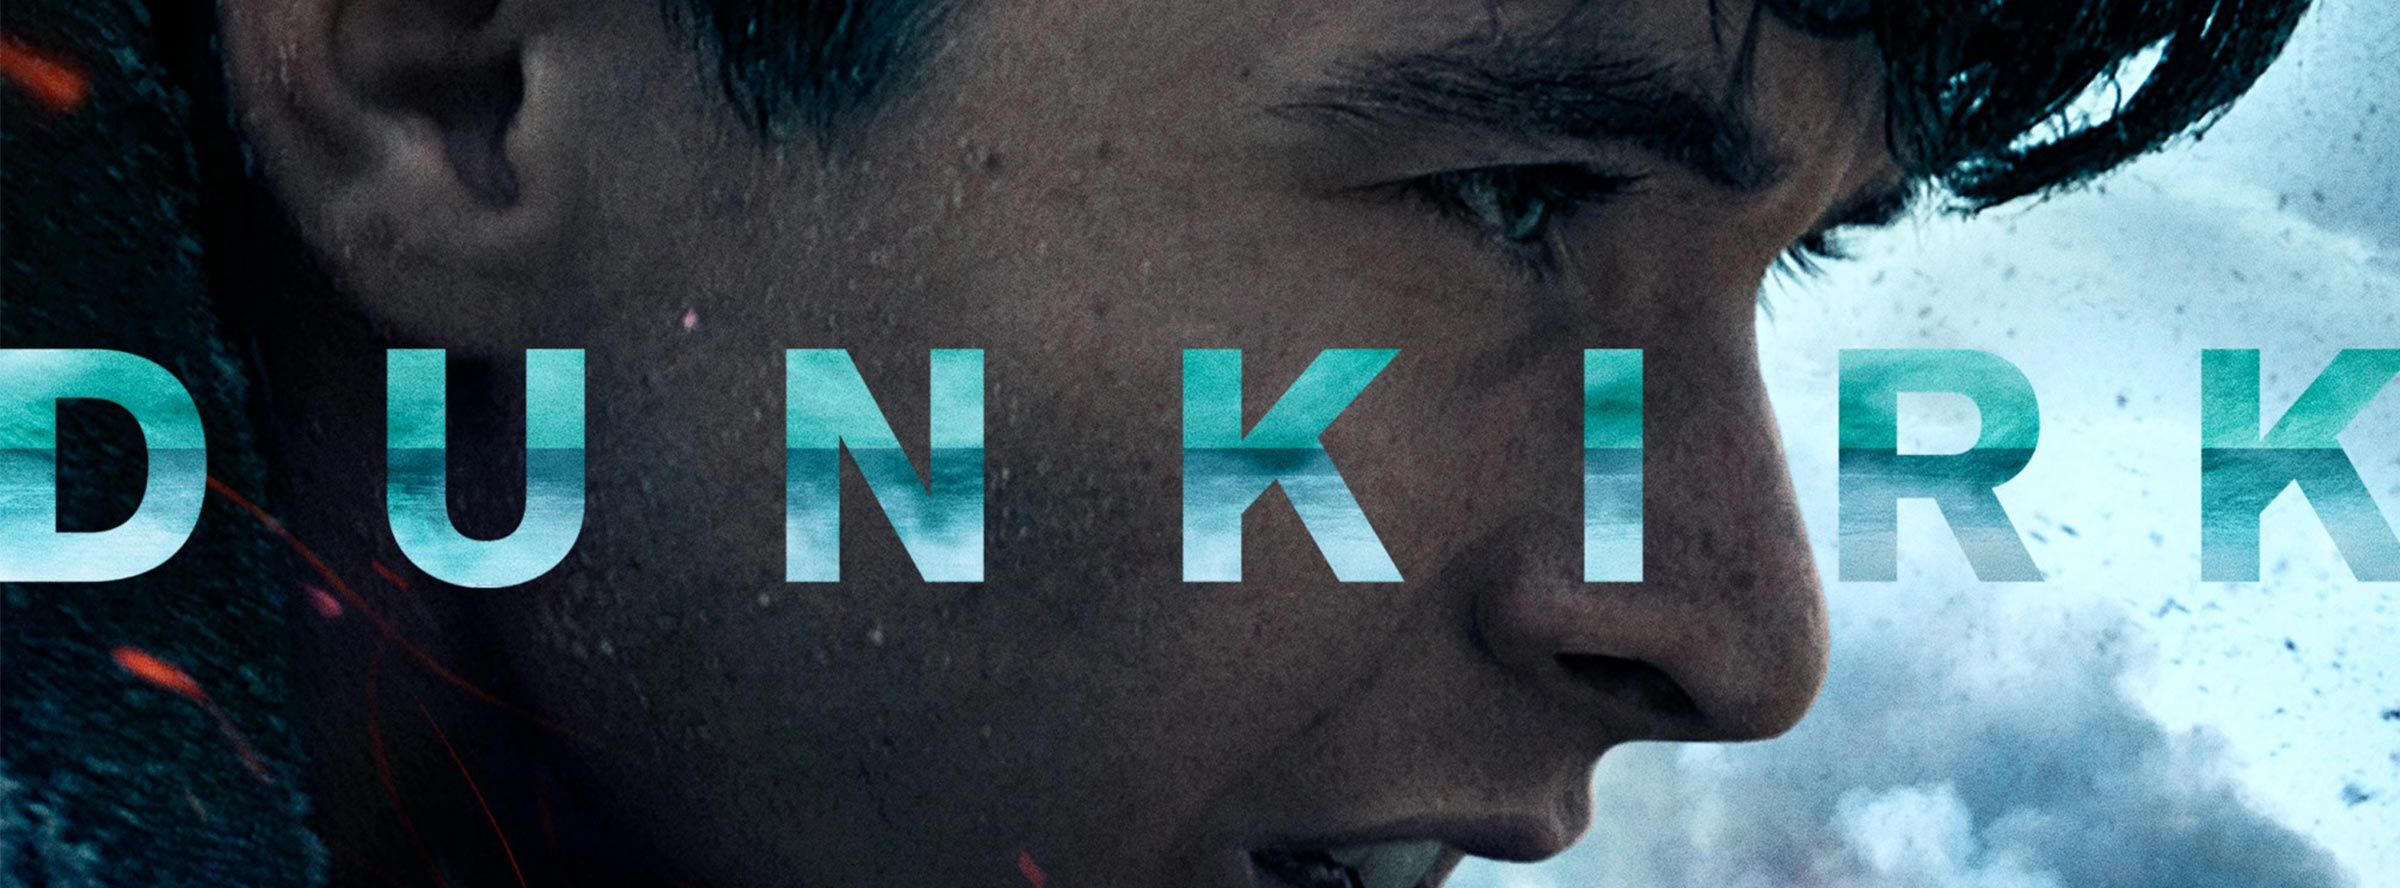 Slider Image for Dunkirk